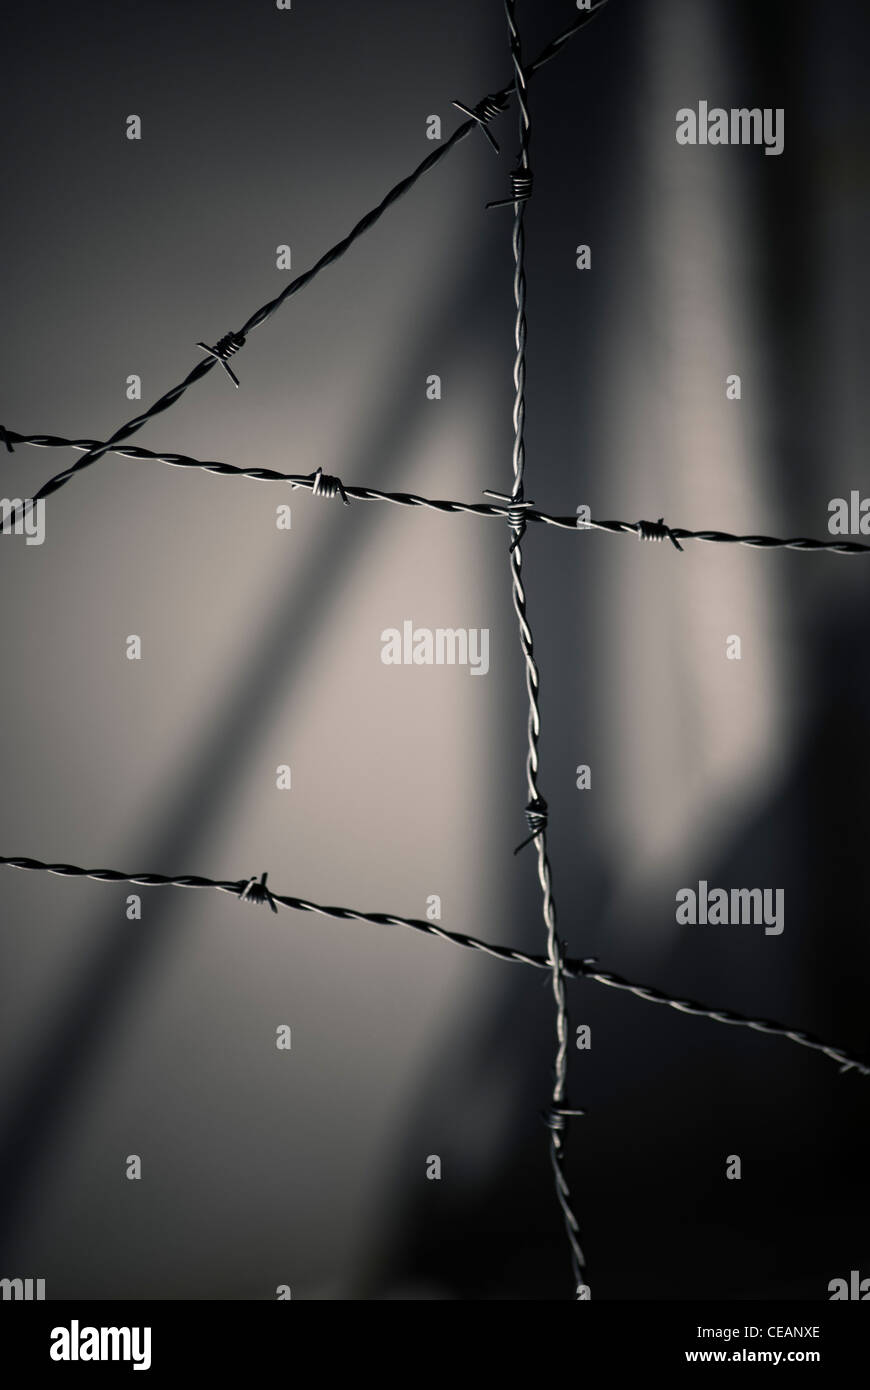 Barbed Wires and shadows - Stock Image